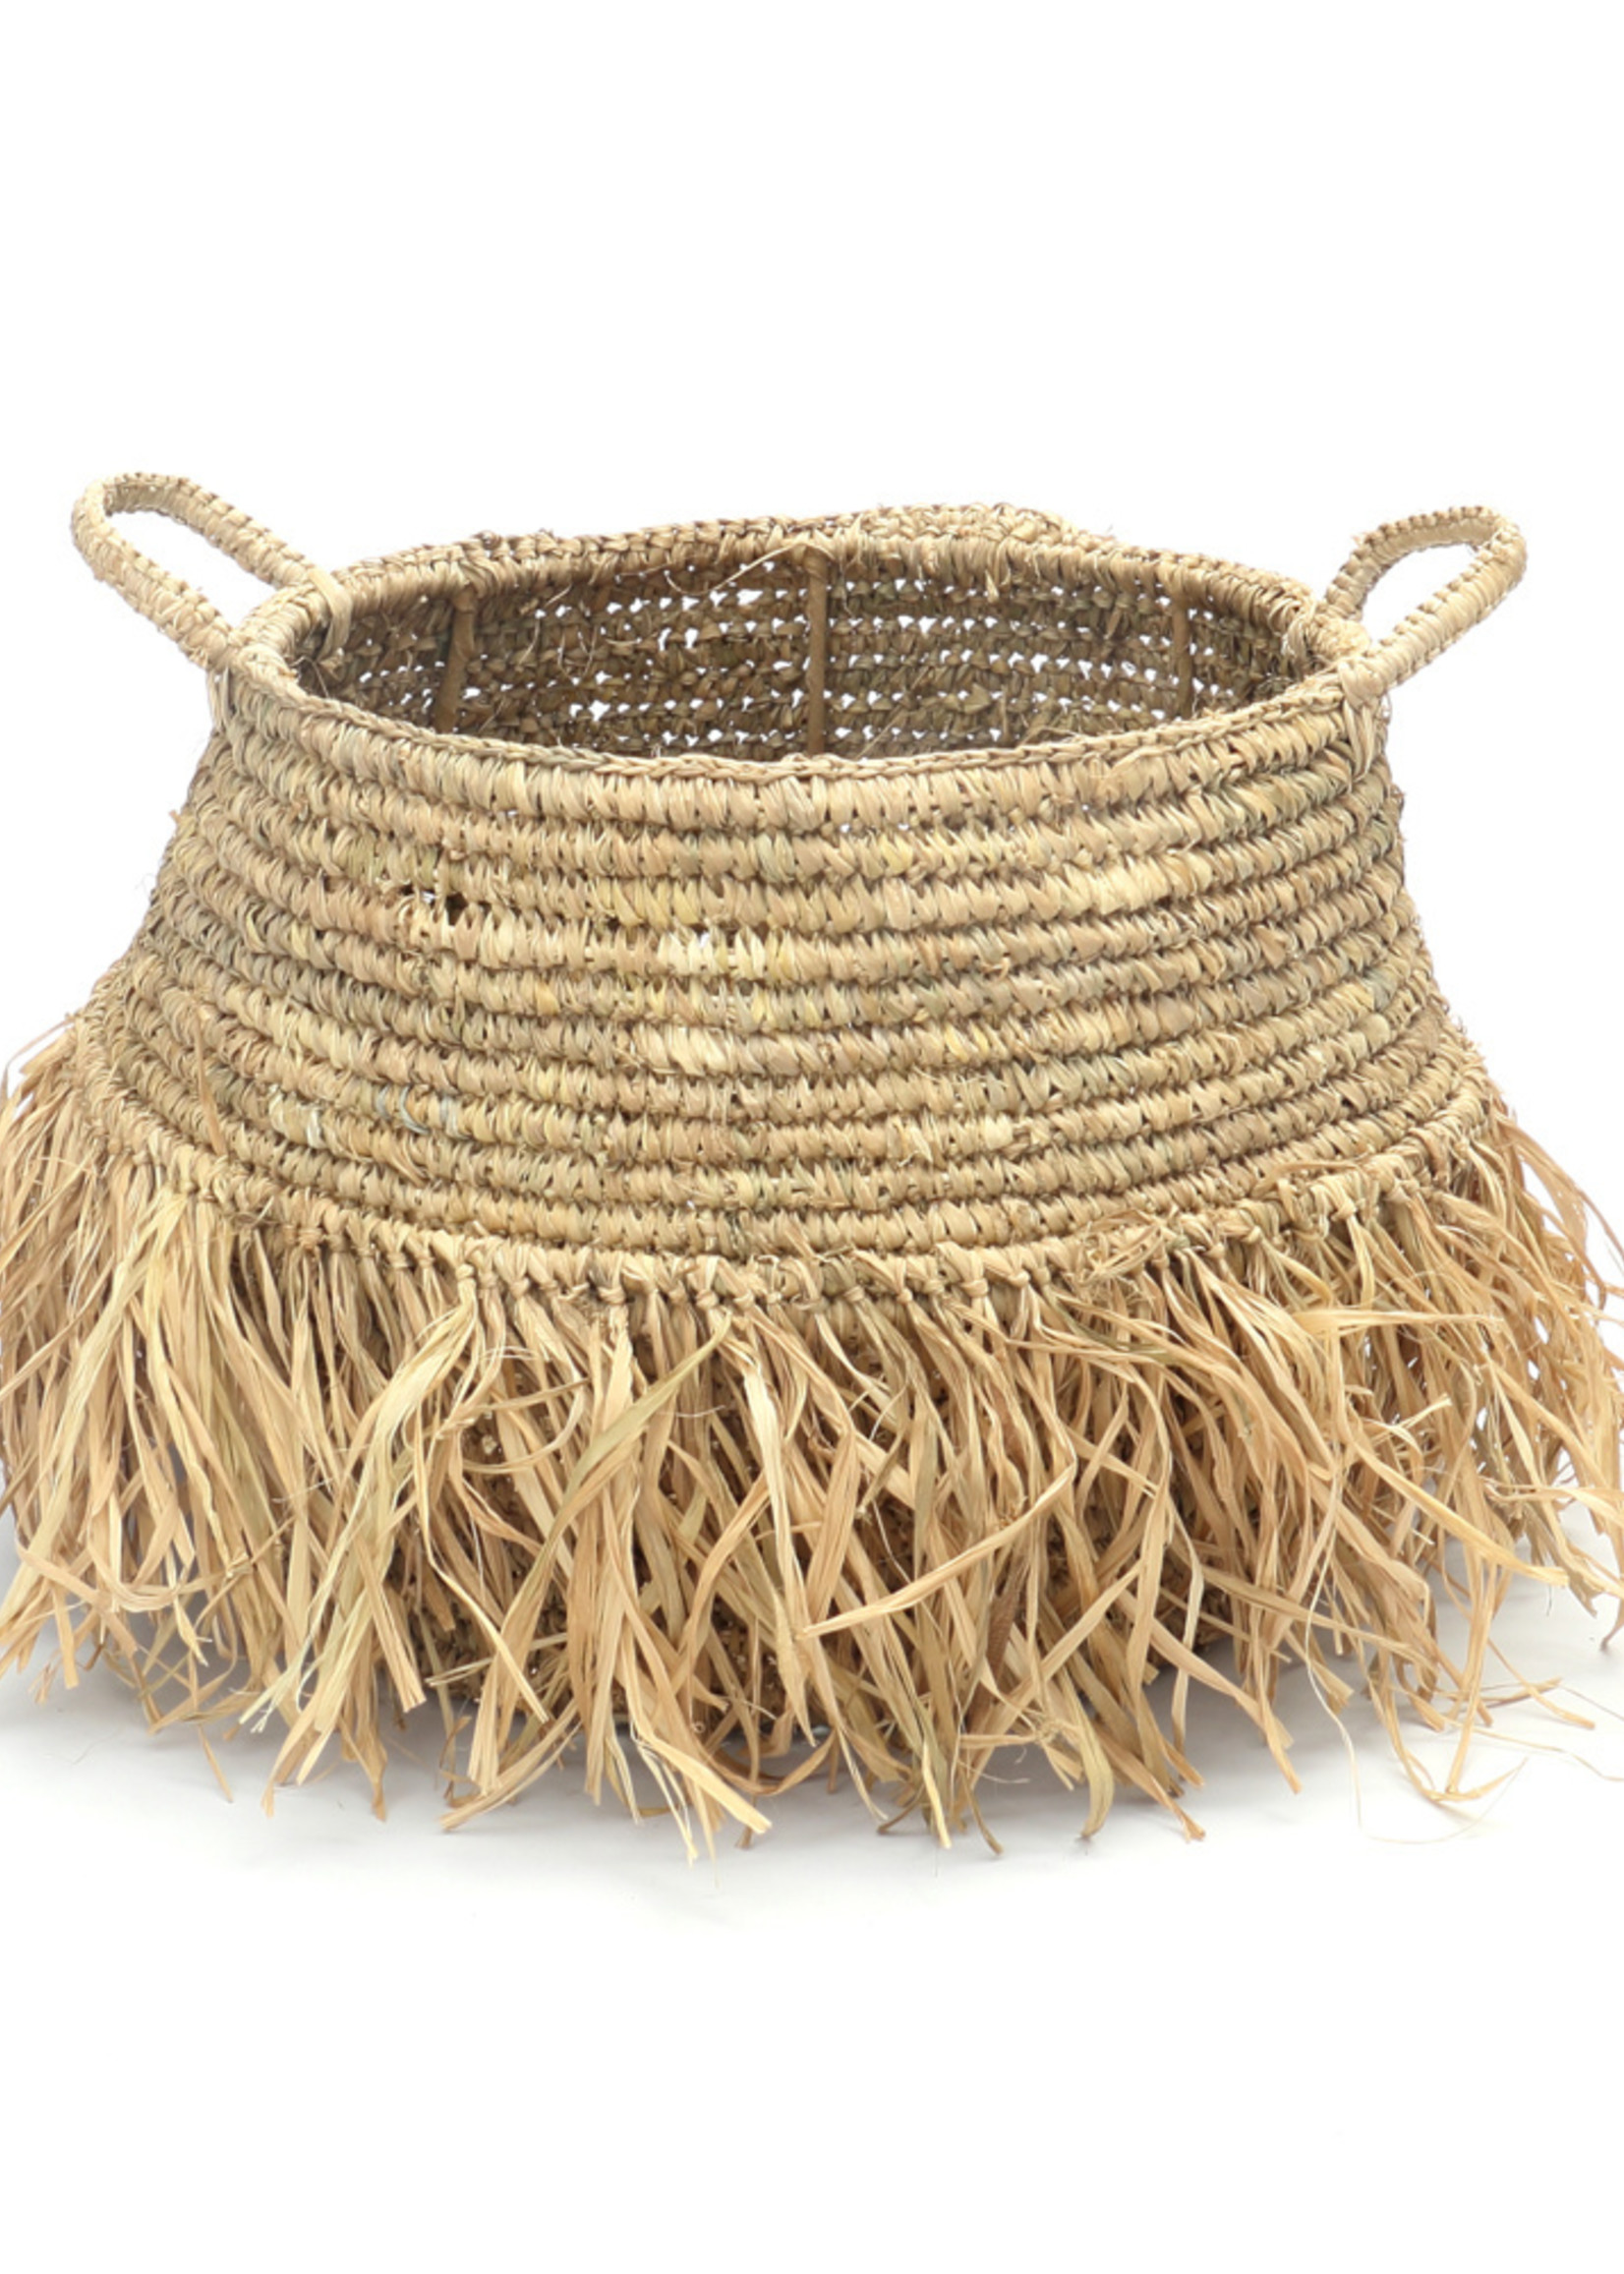 The Raffia Deluxe Baskets - Natural - SET2